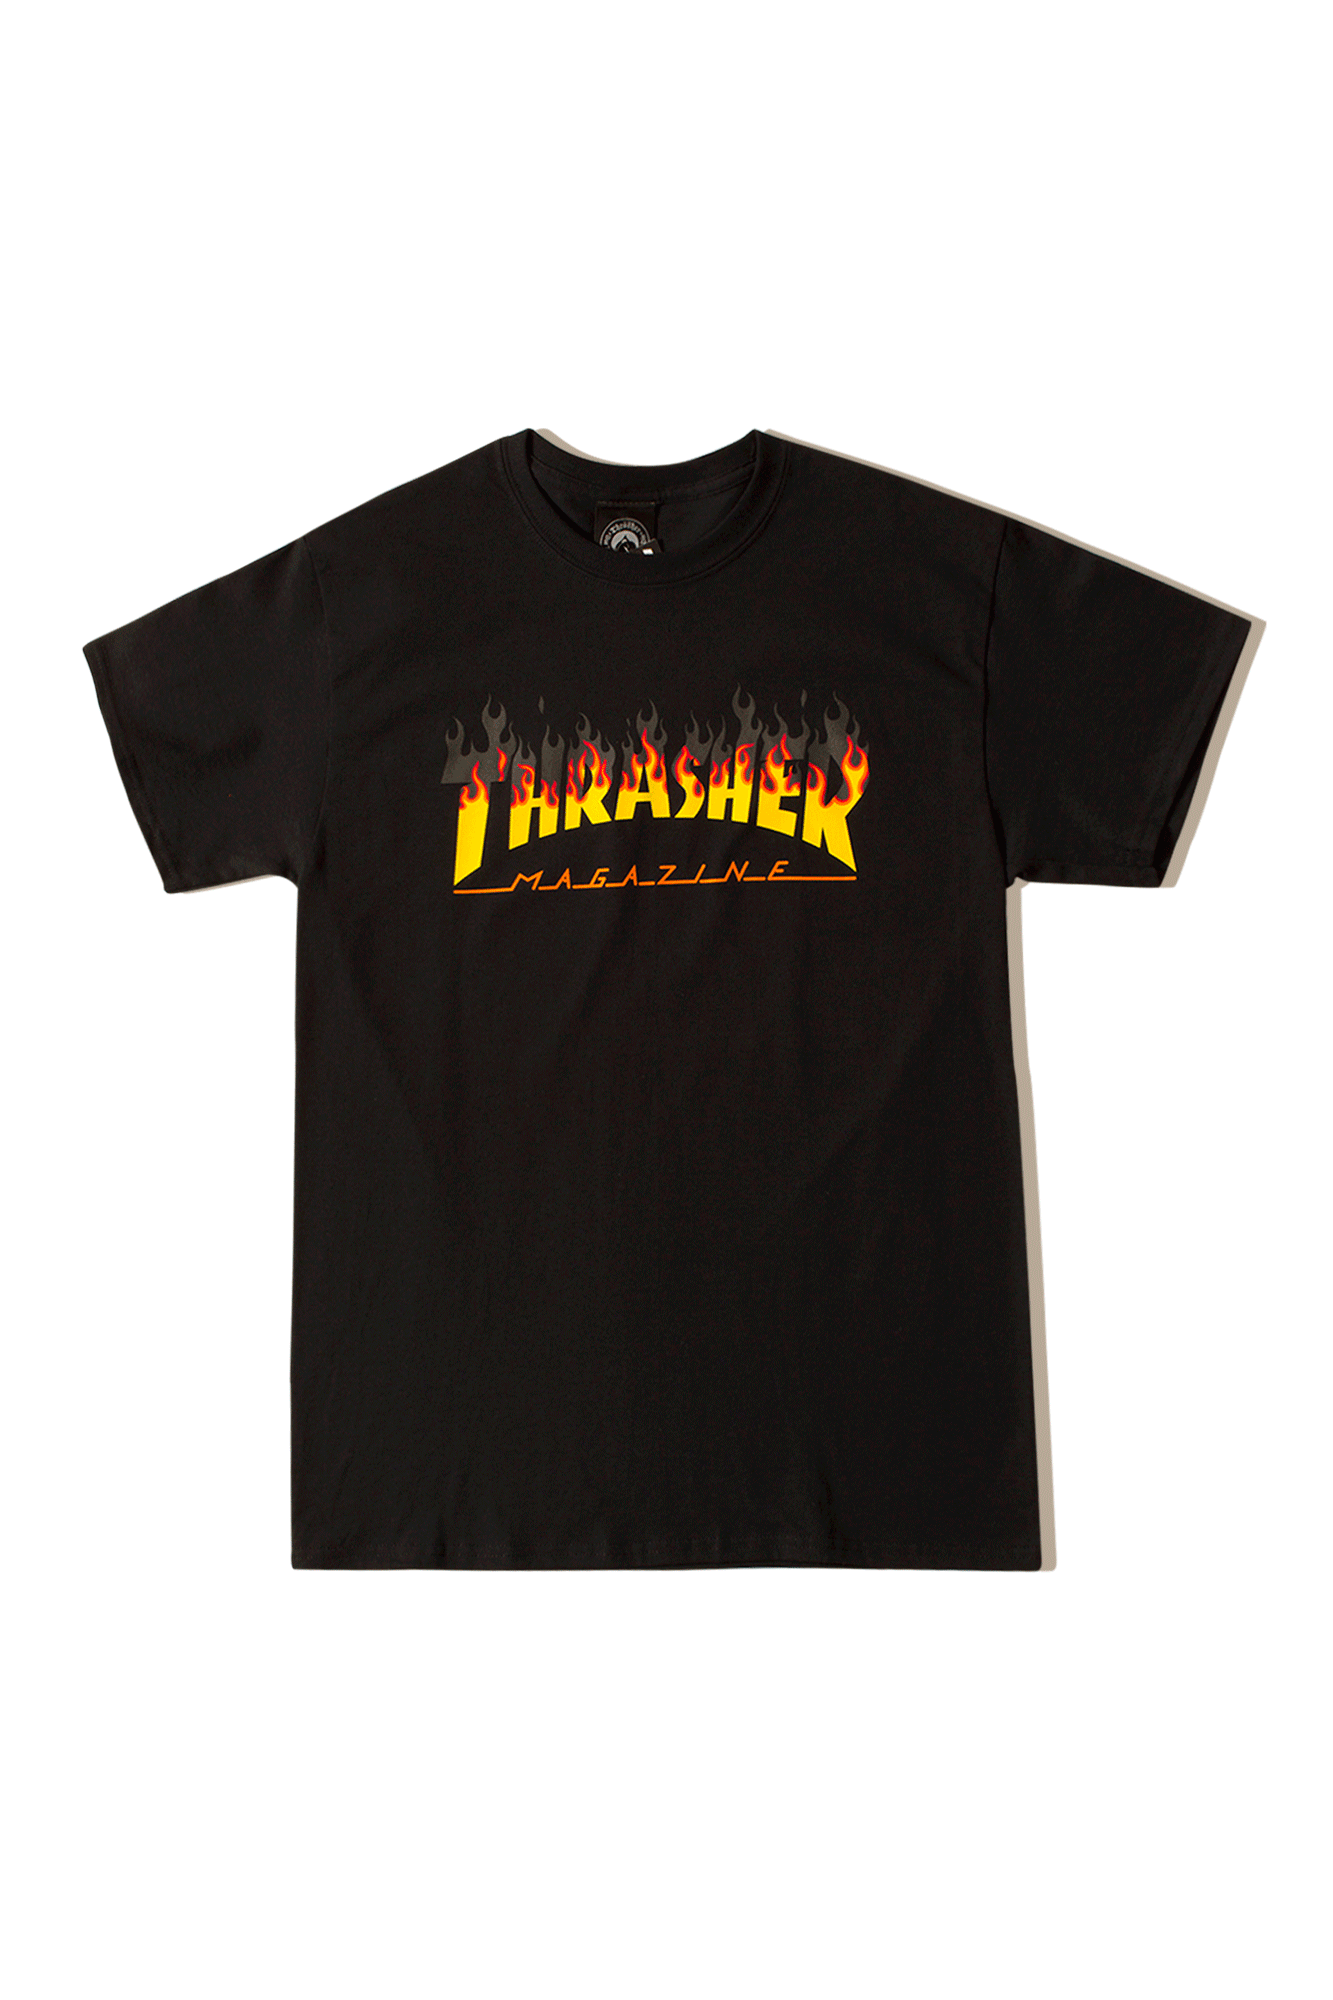 Thrasher T-Shirts BBQ T-Shirt Nero 14643B#000#BLACK#S - One Block Down